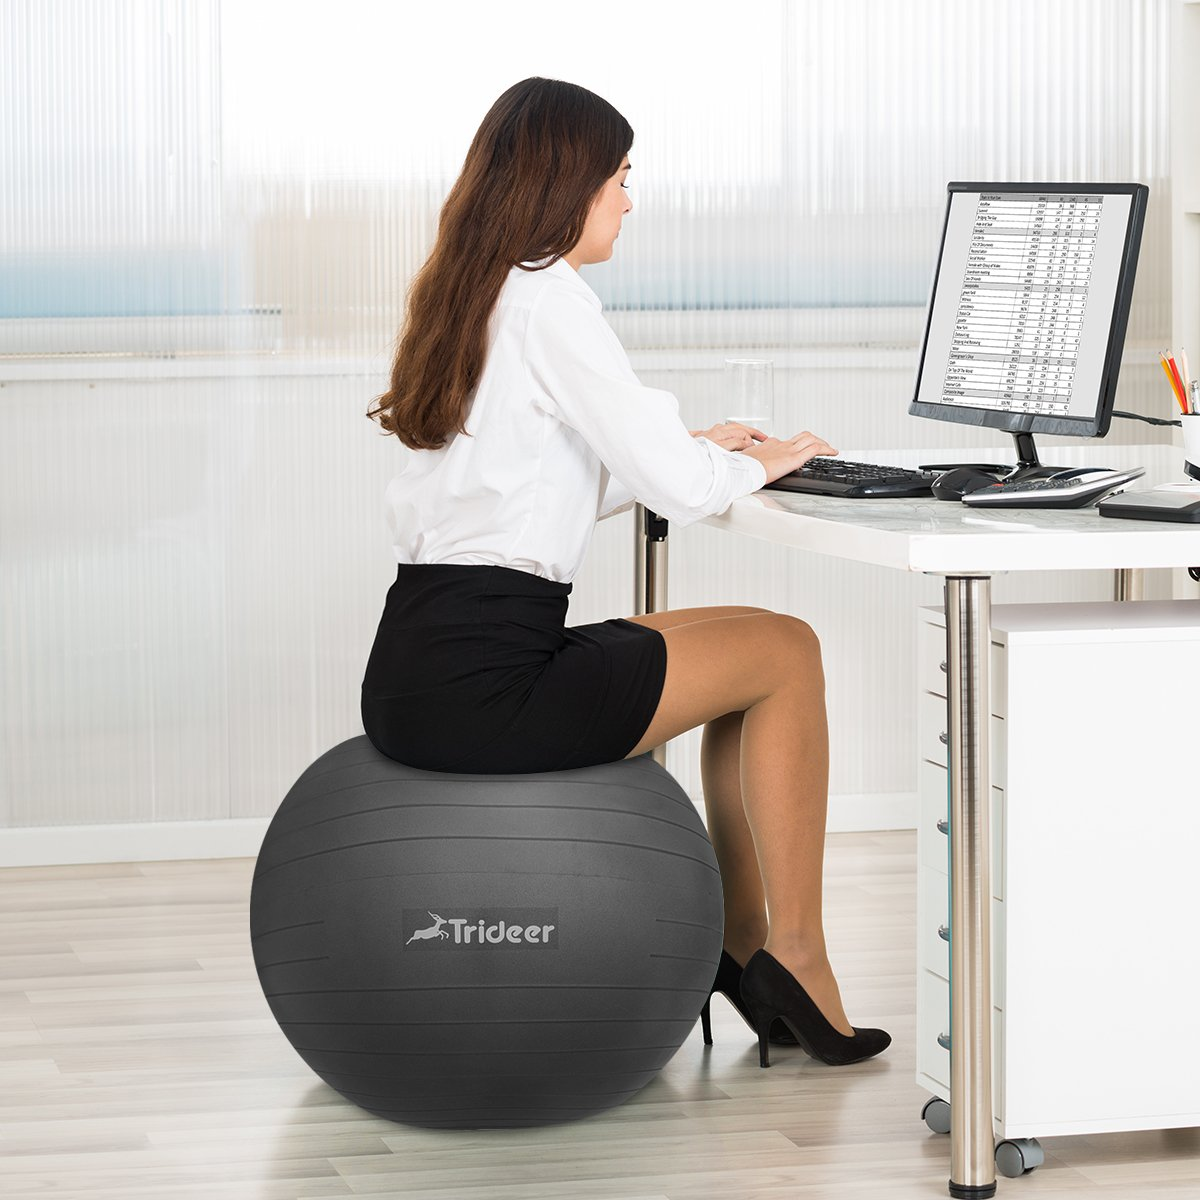 Trideer Exercise Ball (45-85cm) Yoga Ball Chair, Anti-Burst & Extra Thick, Birthing Ball with Quick Pump, Supports 2200lbs, Stability Ball (Office and Home) by Trideer (Image #8)